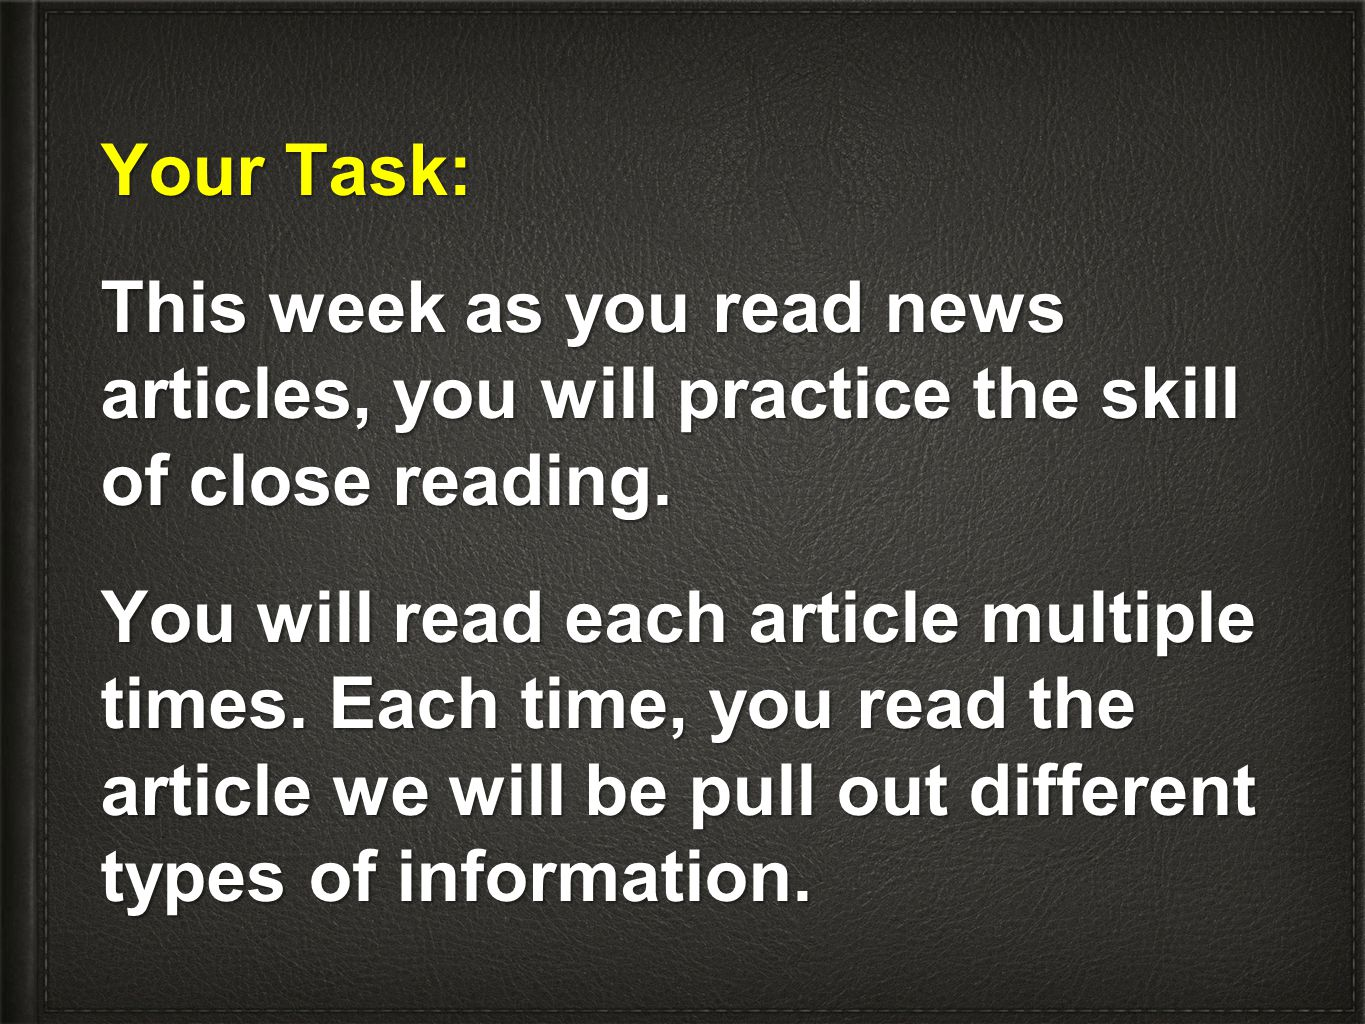 Your Task: This week as you read news articles, you will practice the skill of close reading. You will read each article multiple times. Each time, yo